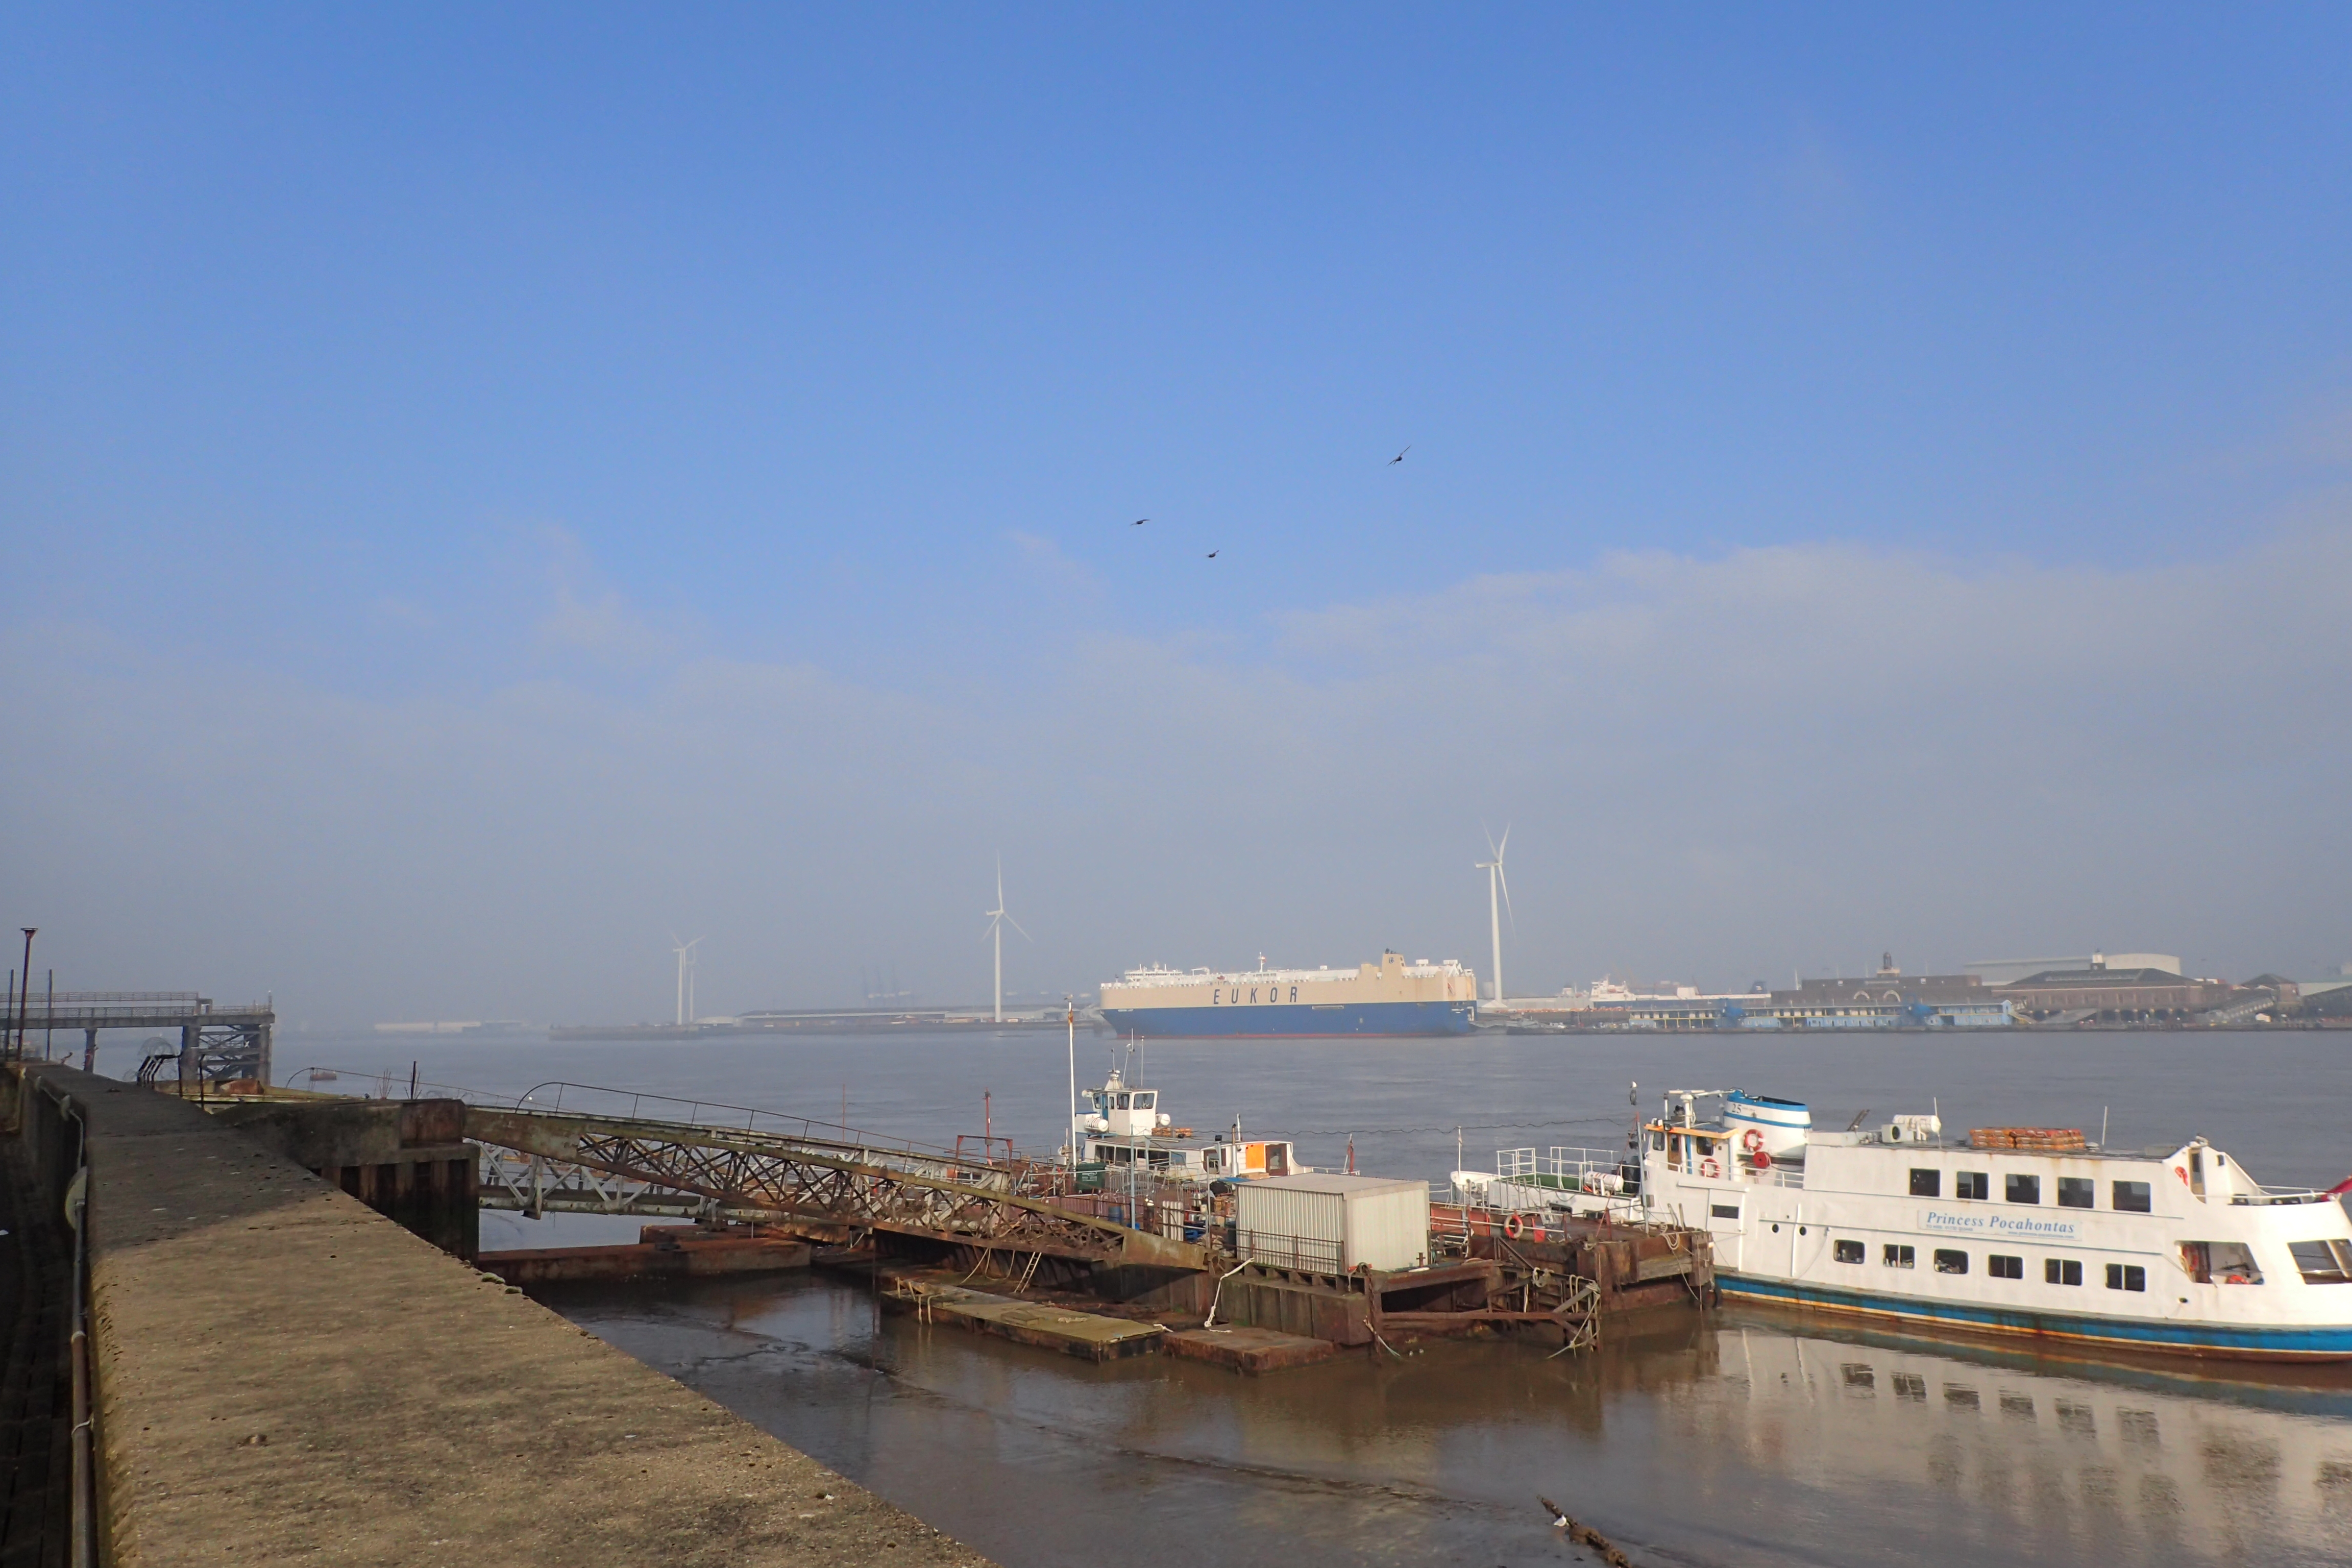 The wide River Thames at Gravesend, I will be crossing back to this point by ferry at the end of the walk